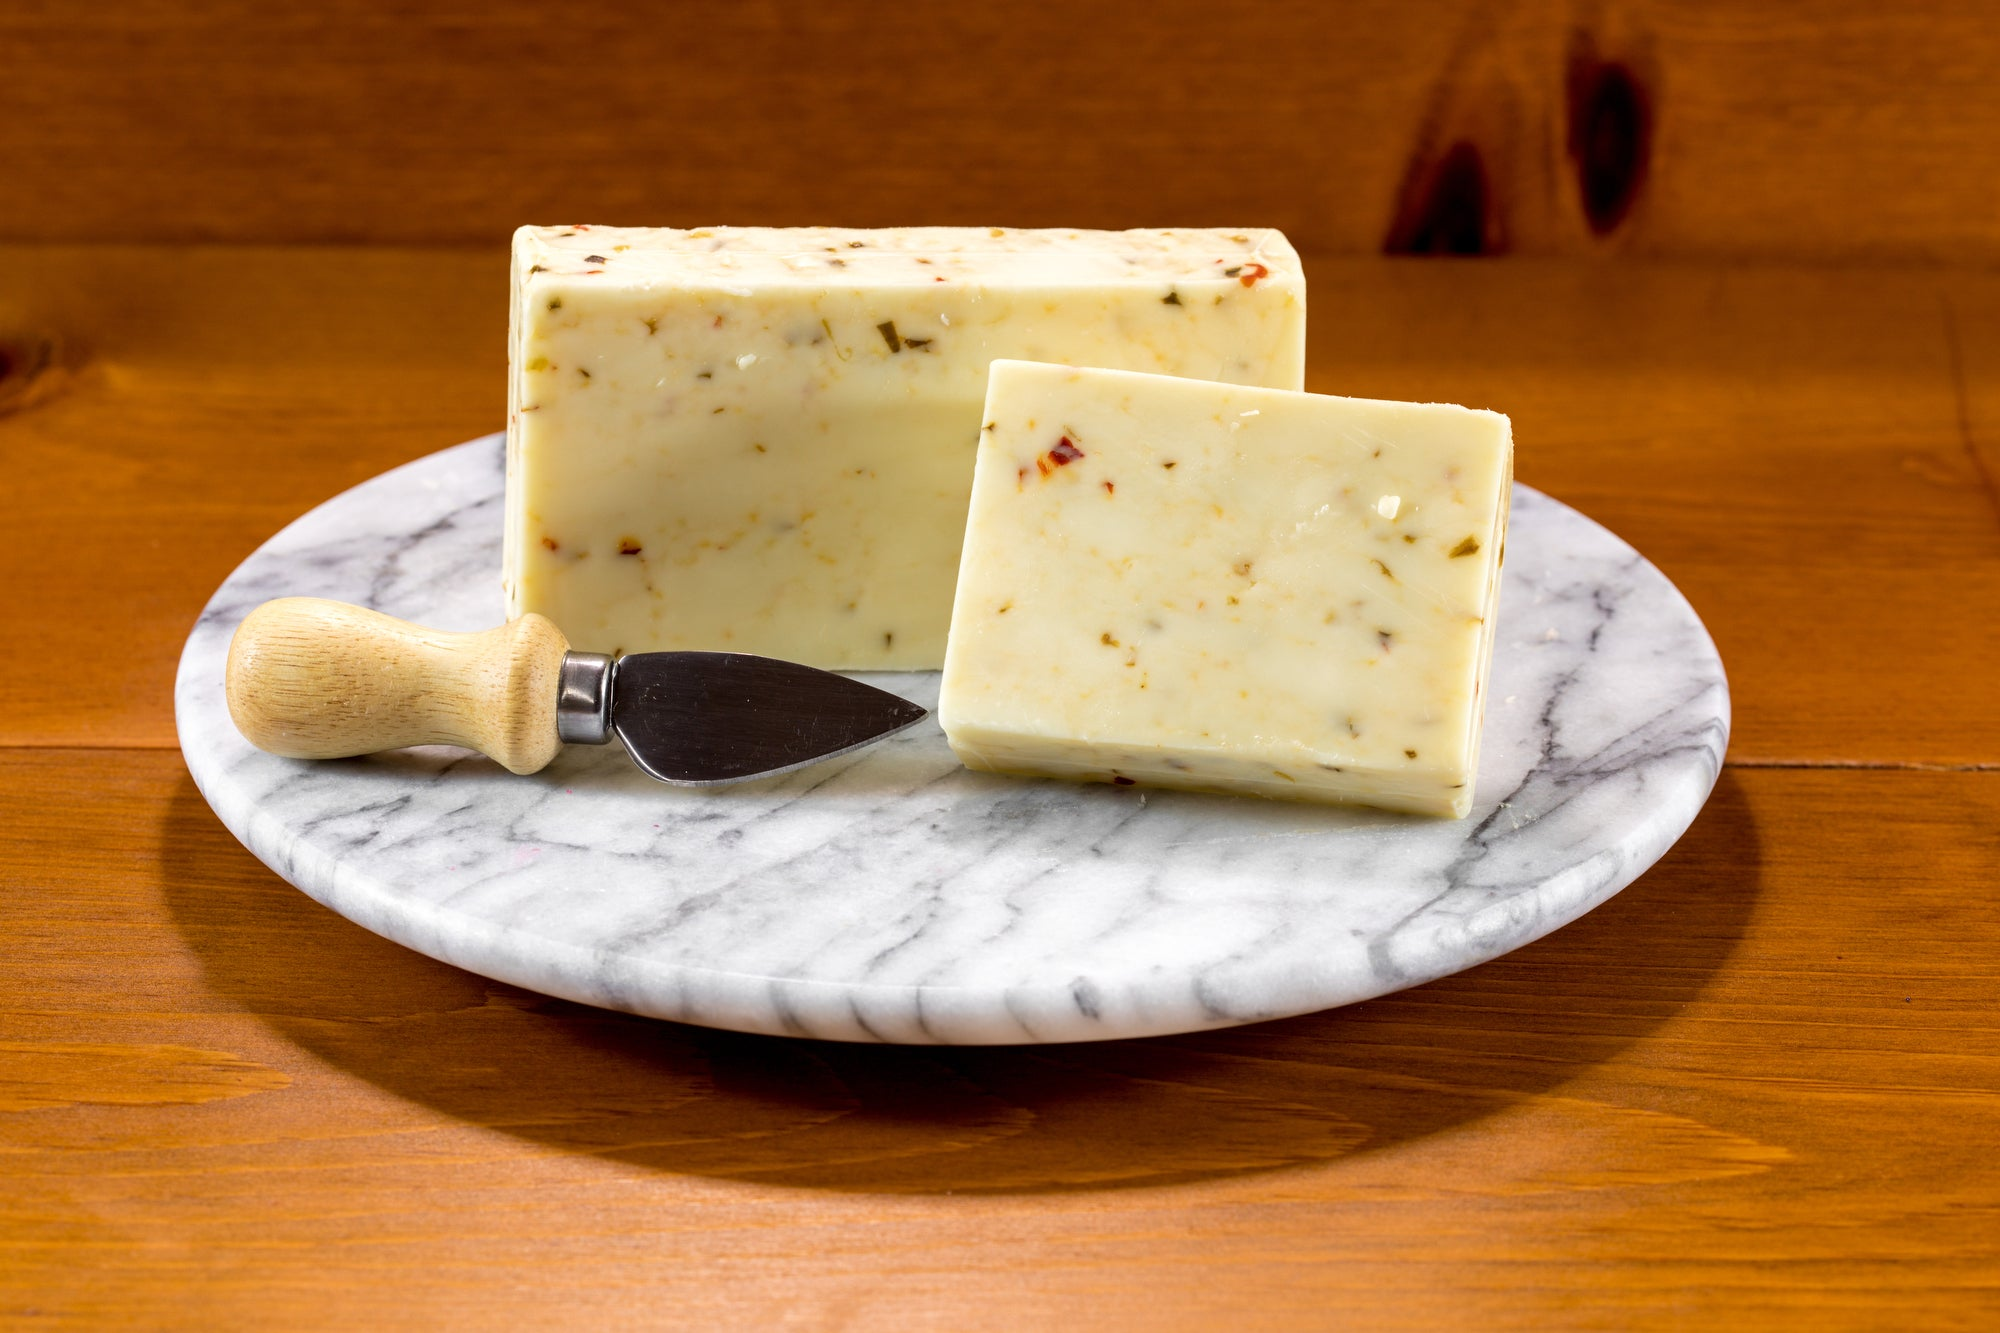 Cheese - Hot Pepper Cheese $2.80 per 1/2 lb.